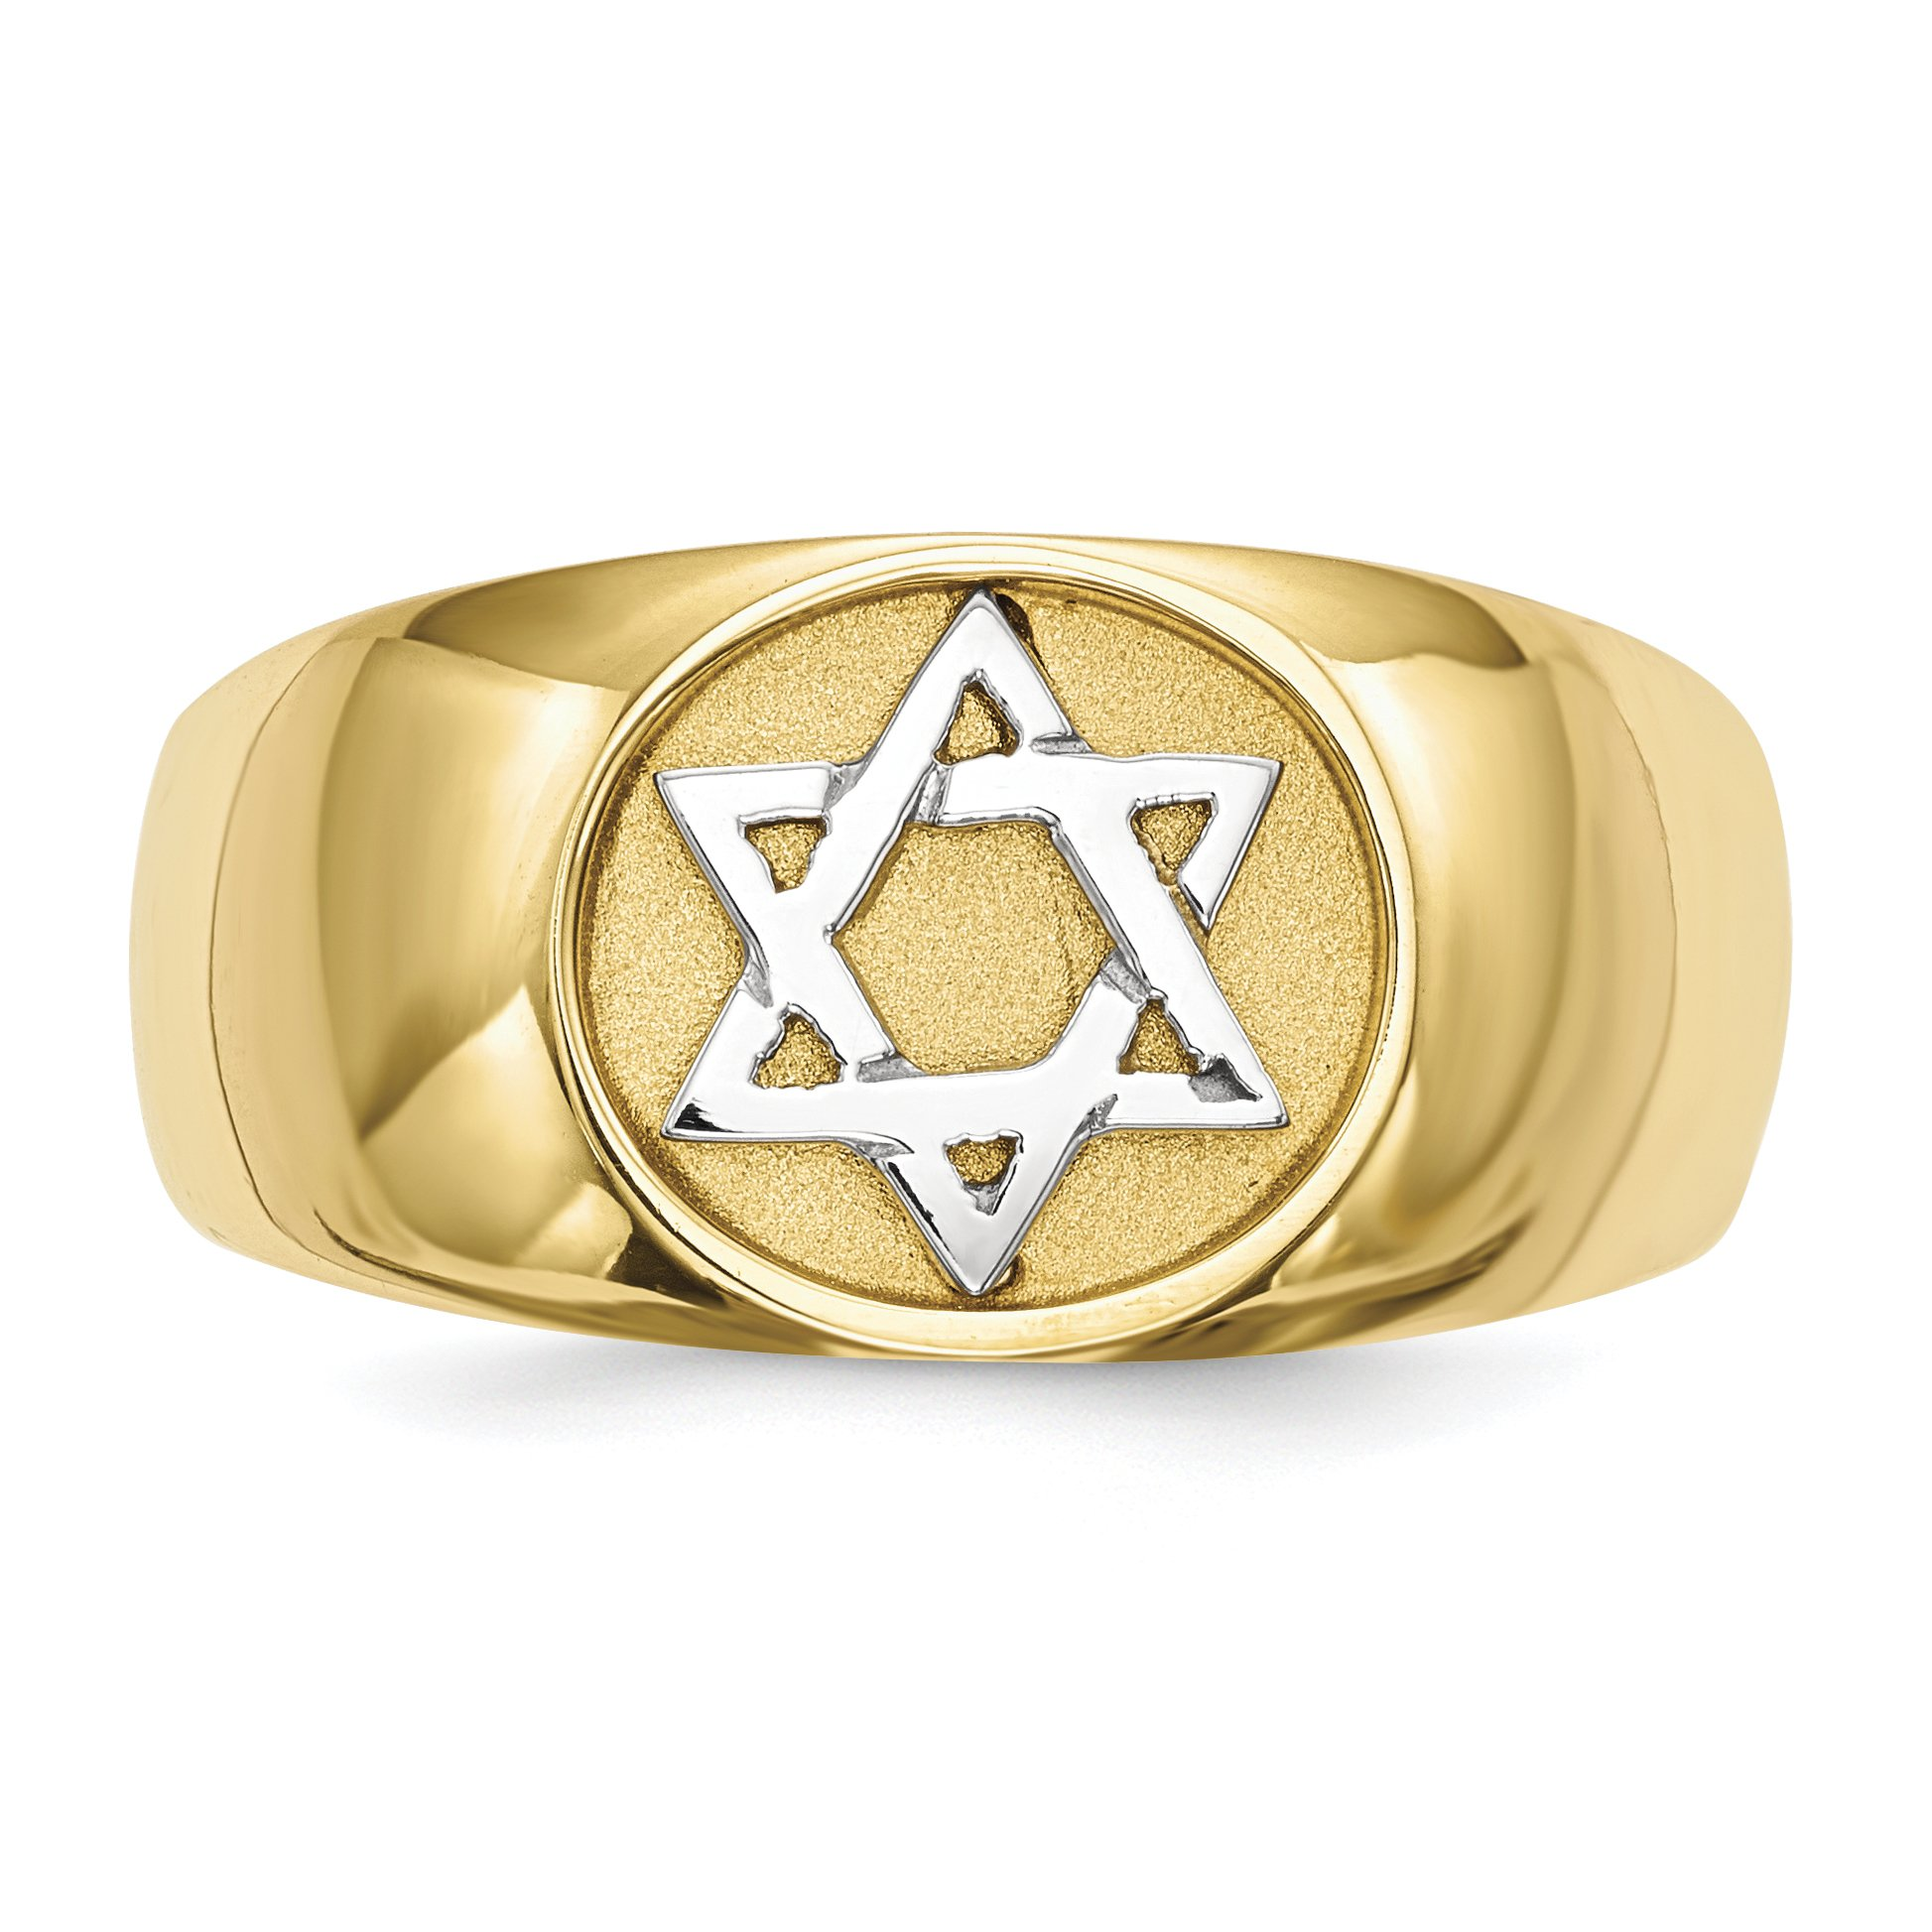 ICE CARATS 14k Yellow Gold Two Tone Jewish Jewelry Star Of David Band Ring Size 7.00 Religious Fine Jewelry Gift Set For Women Heart by ICE CARATS (Image #3)